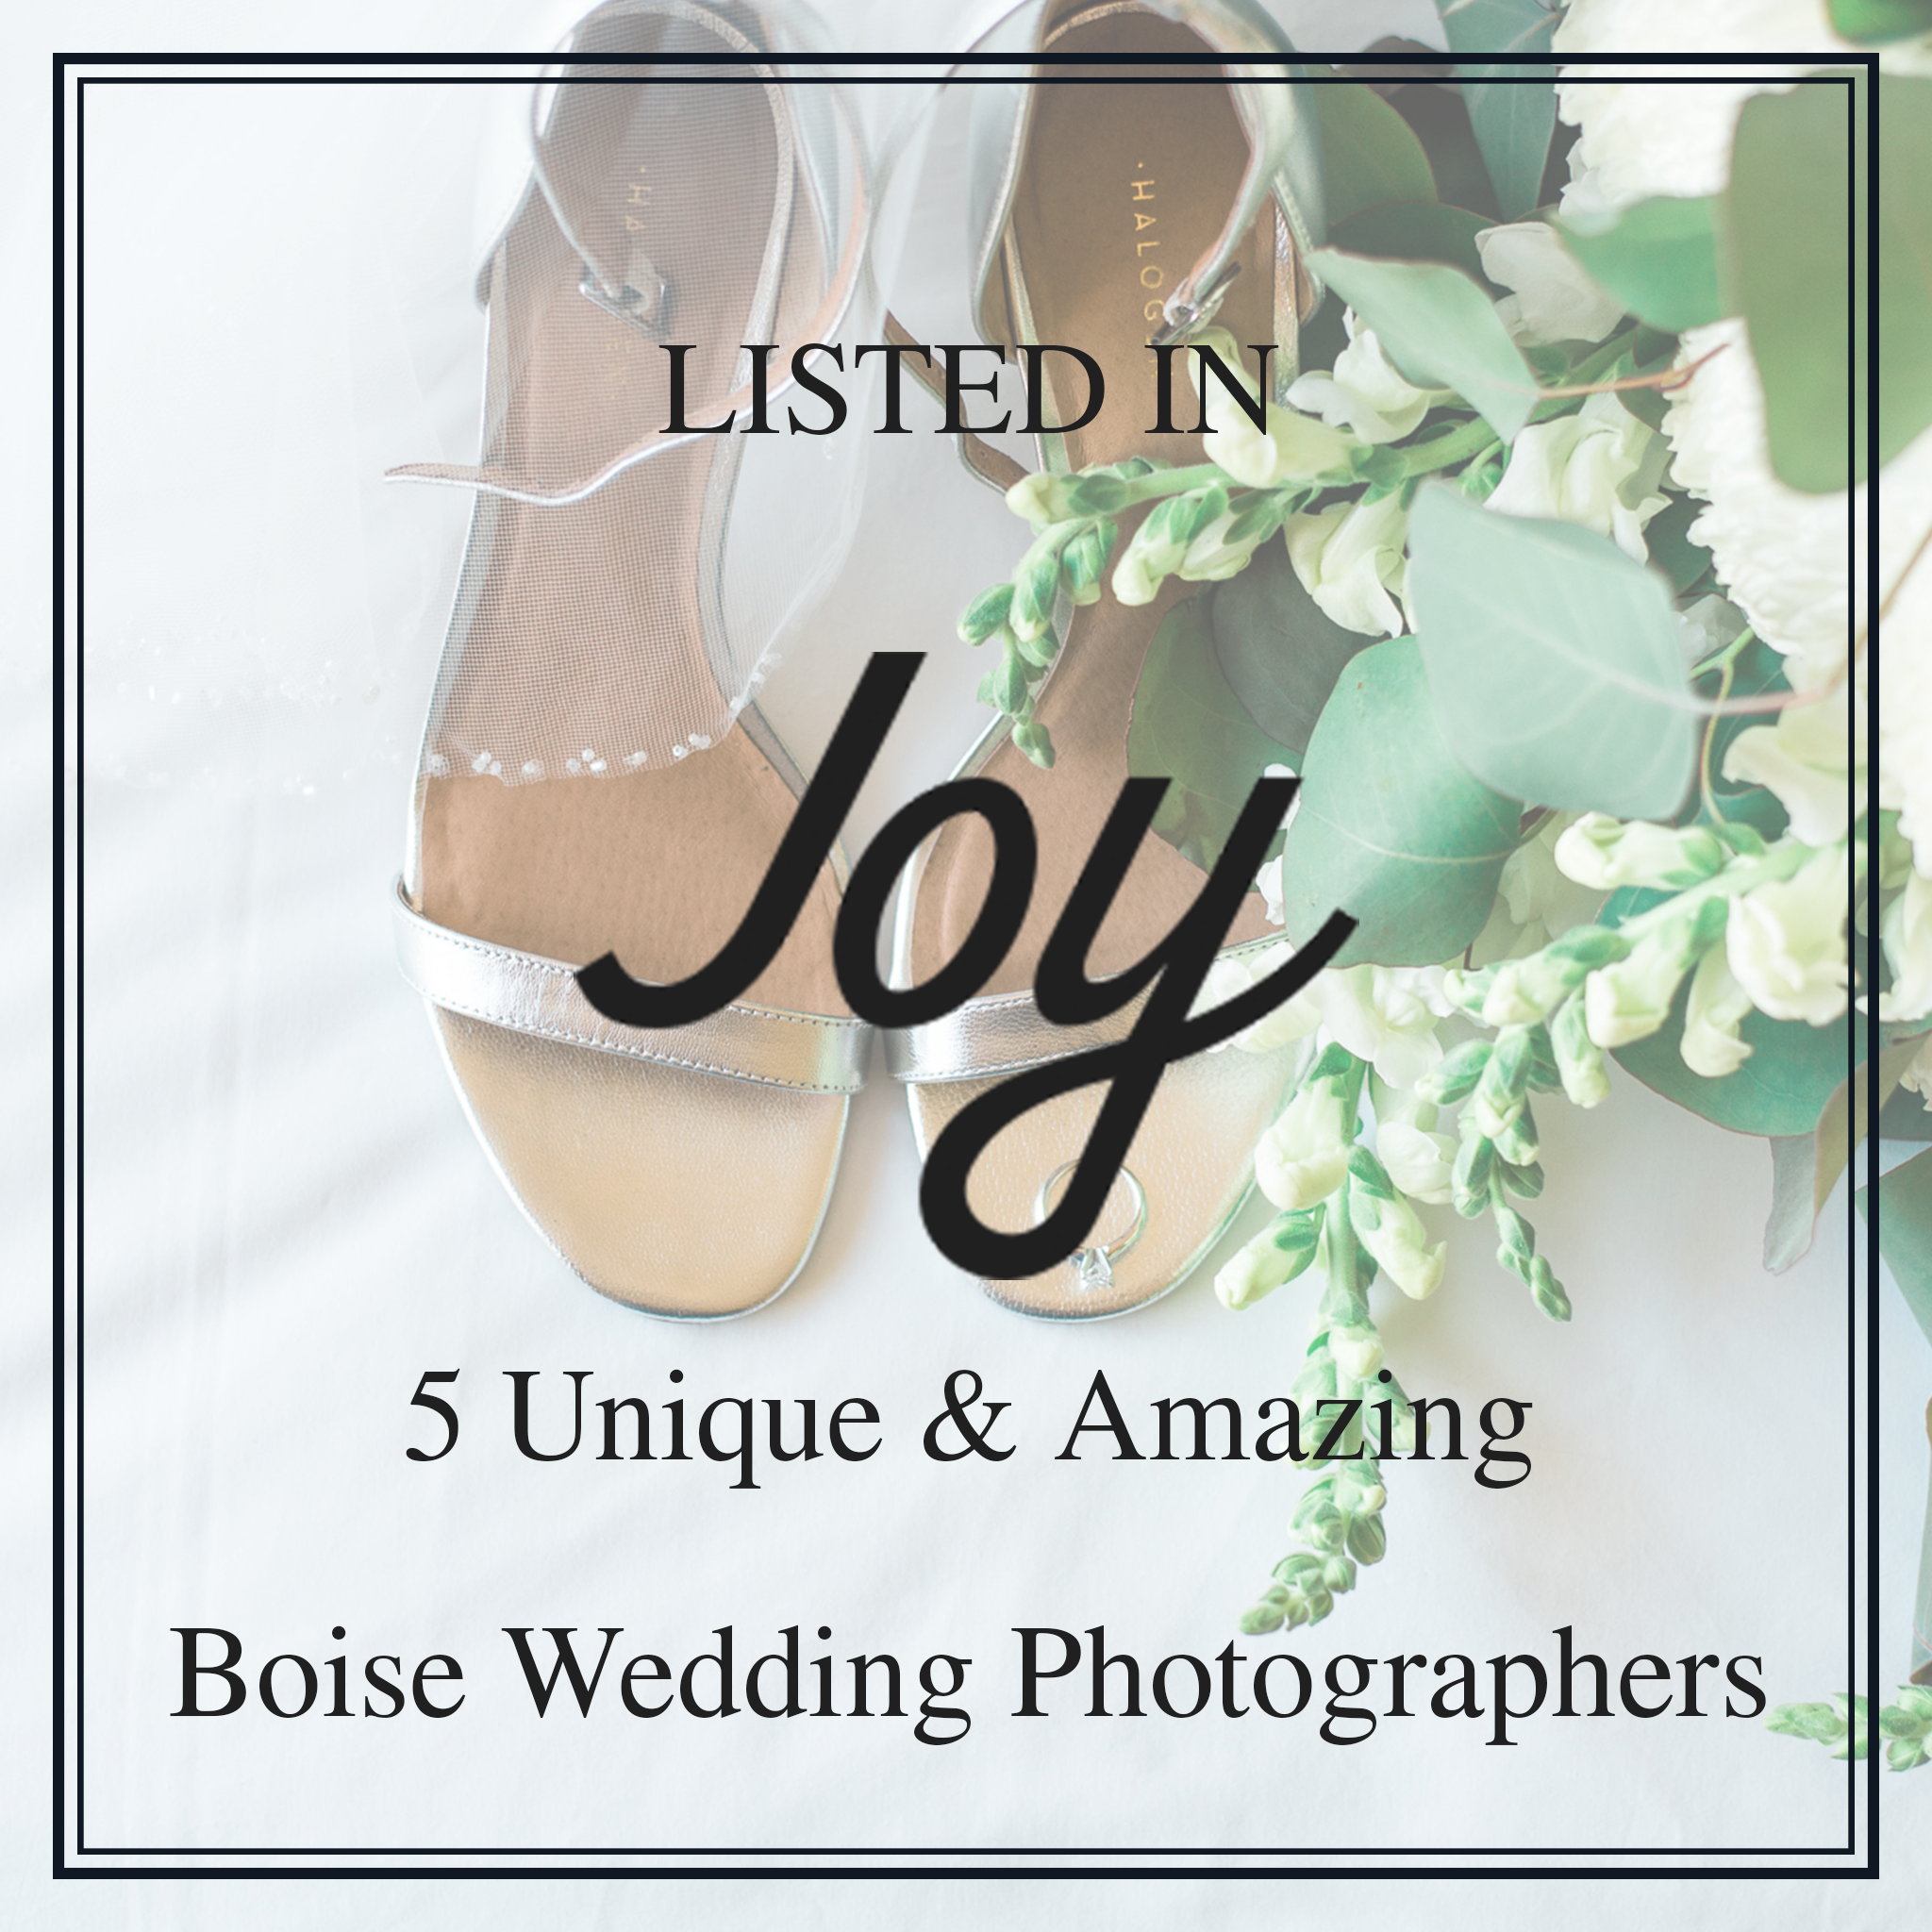 5-unique-and-amazing-boise-wedding-photographers